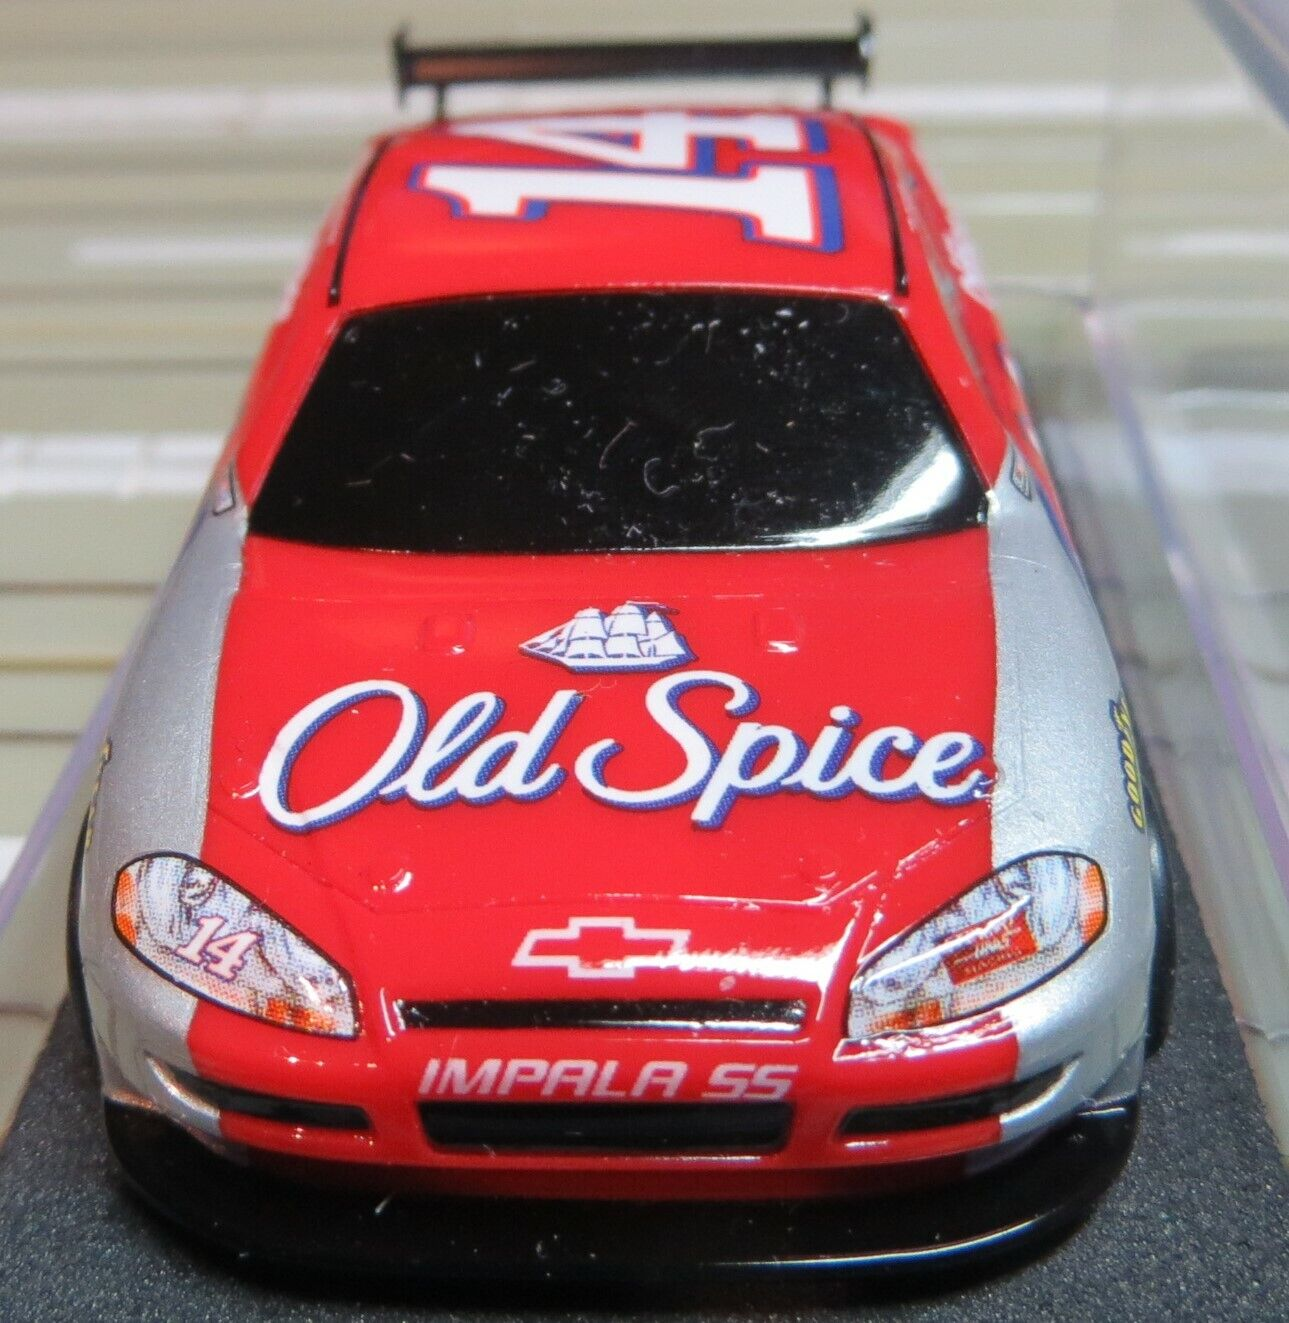 For H0 Slotcar Racing Model Railway Nascar with Life like Engine in Box